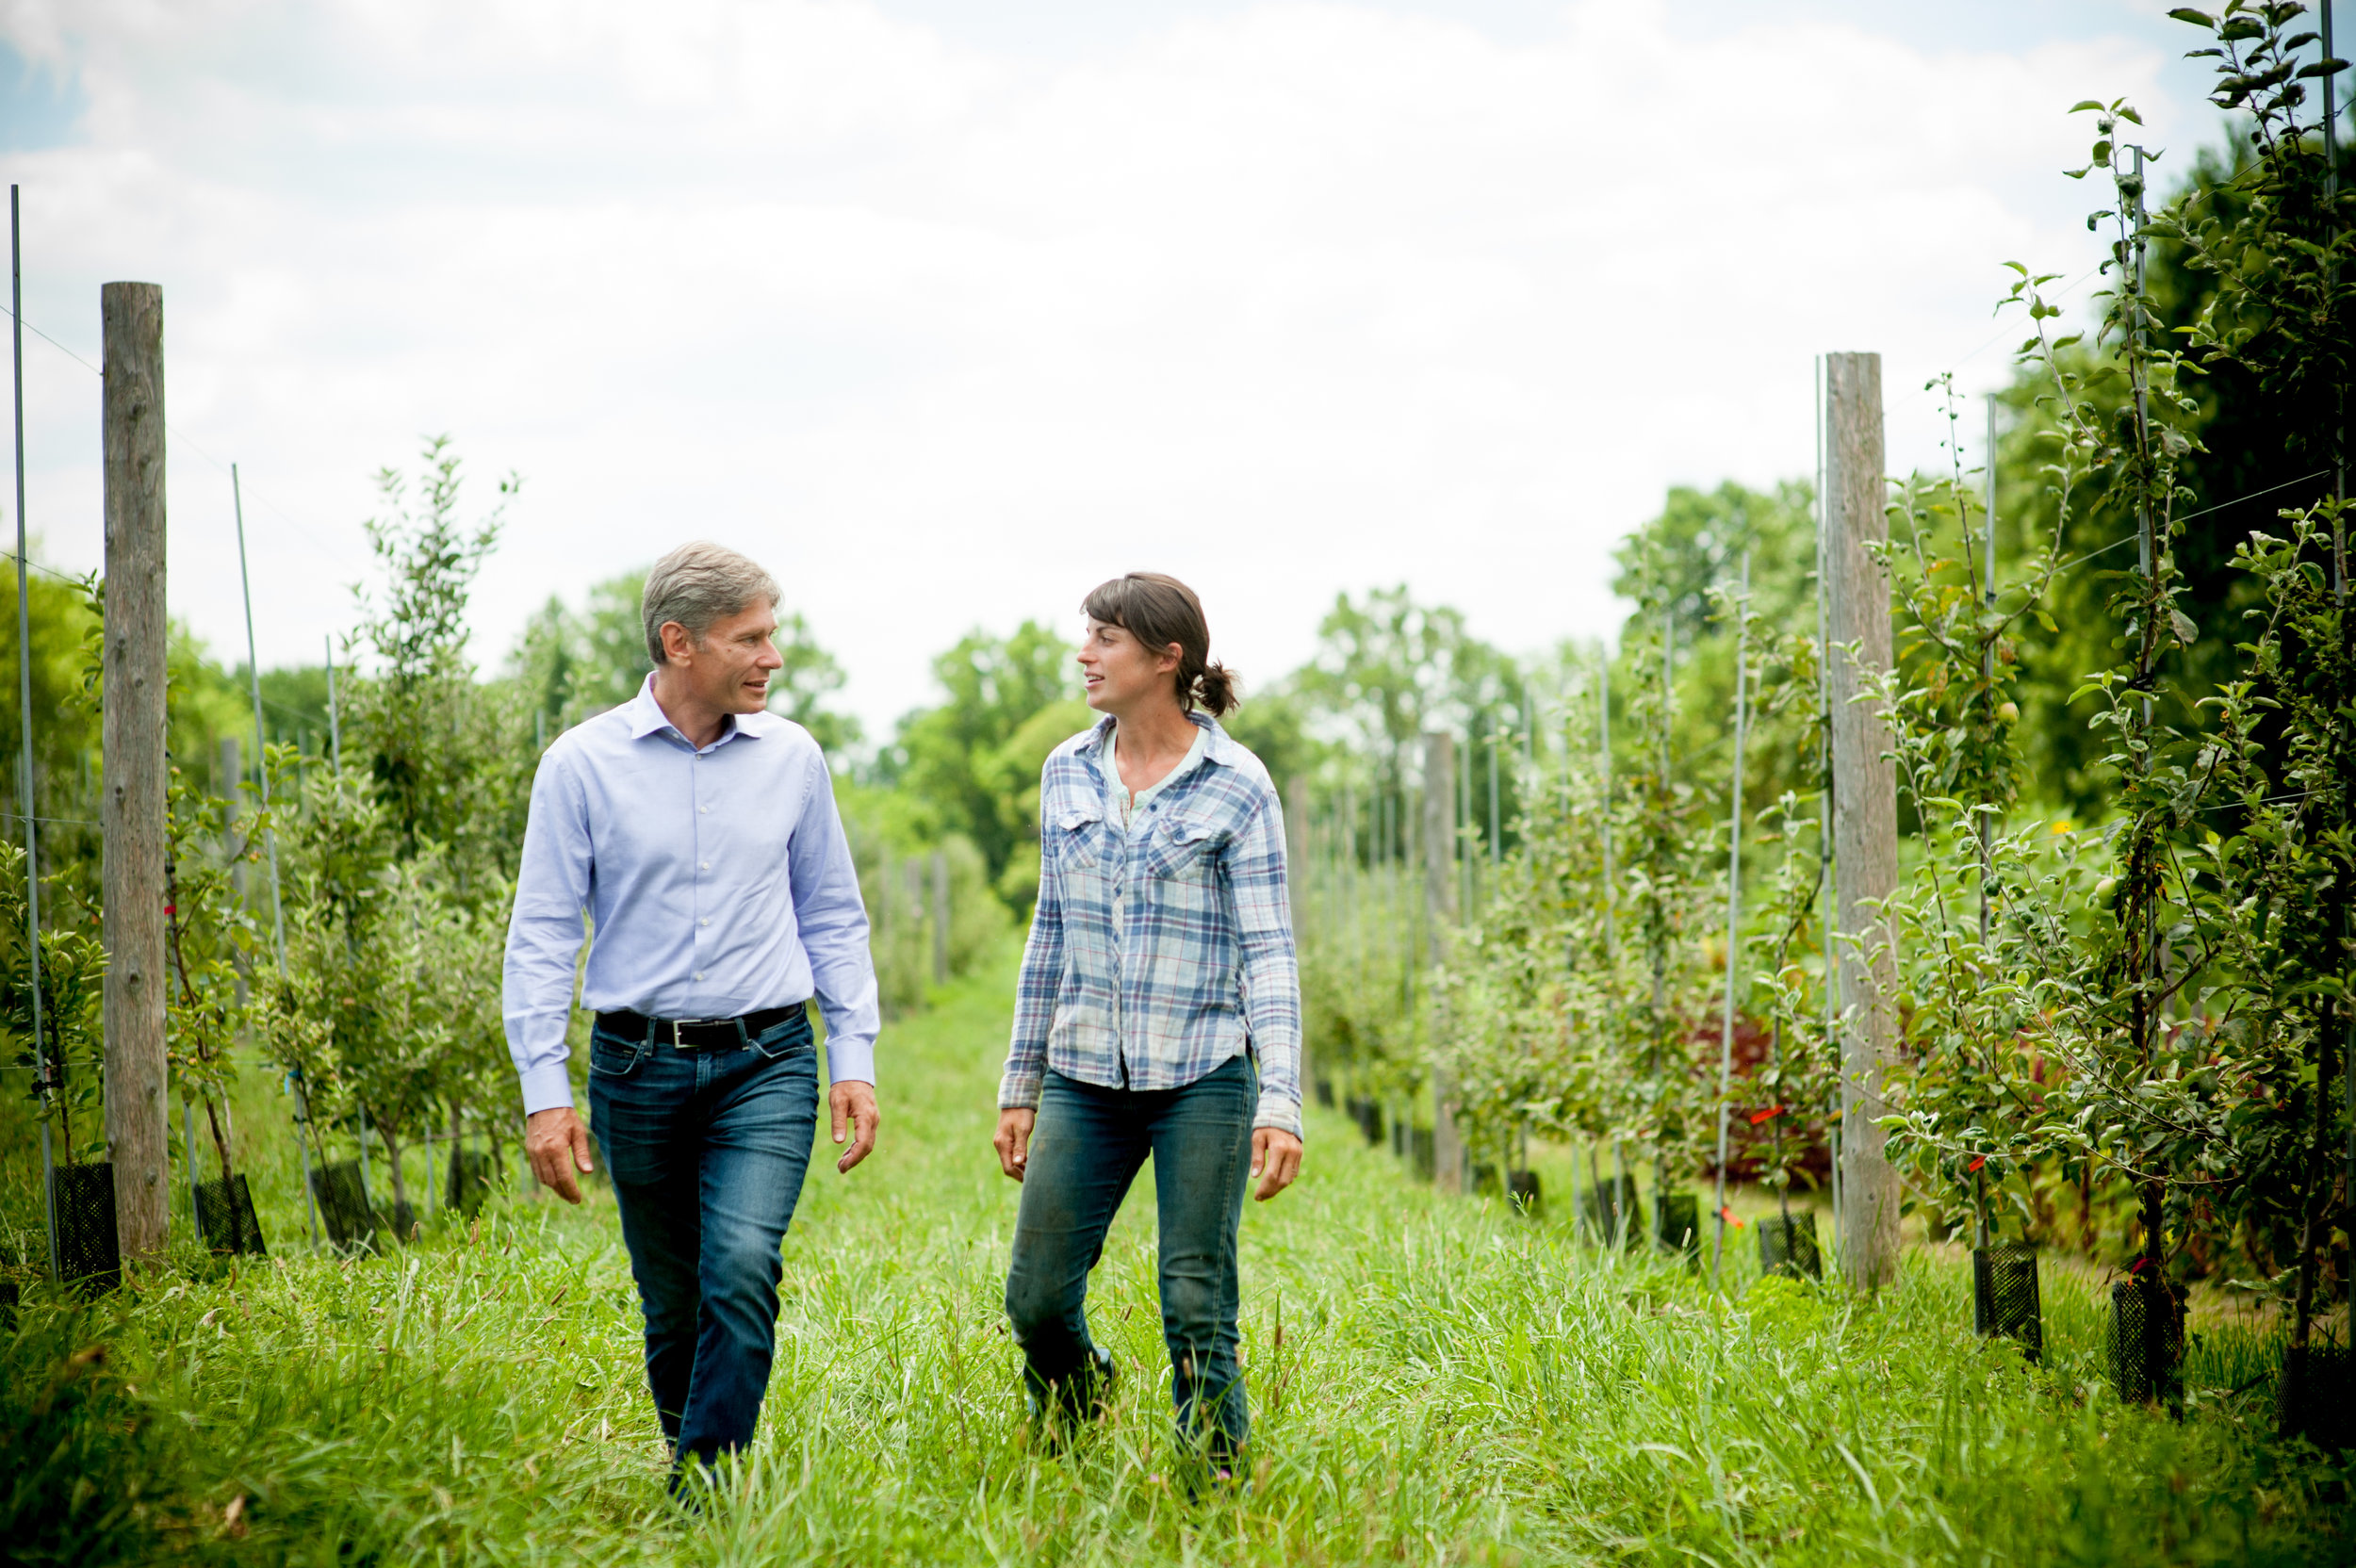 Tom Malinowski Tours NJ Agriculture